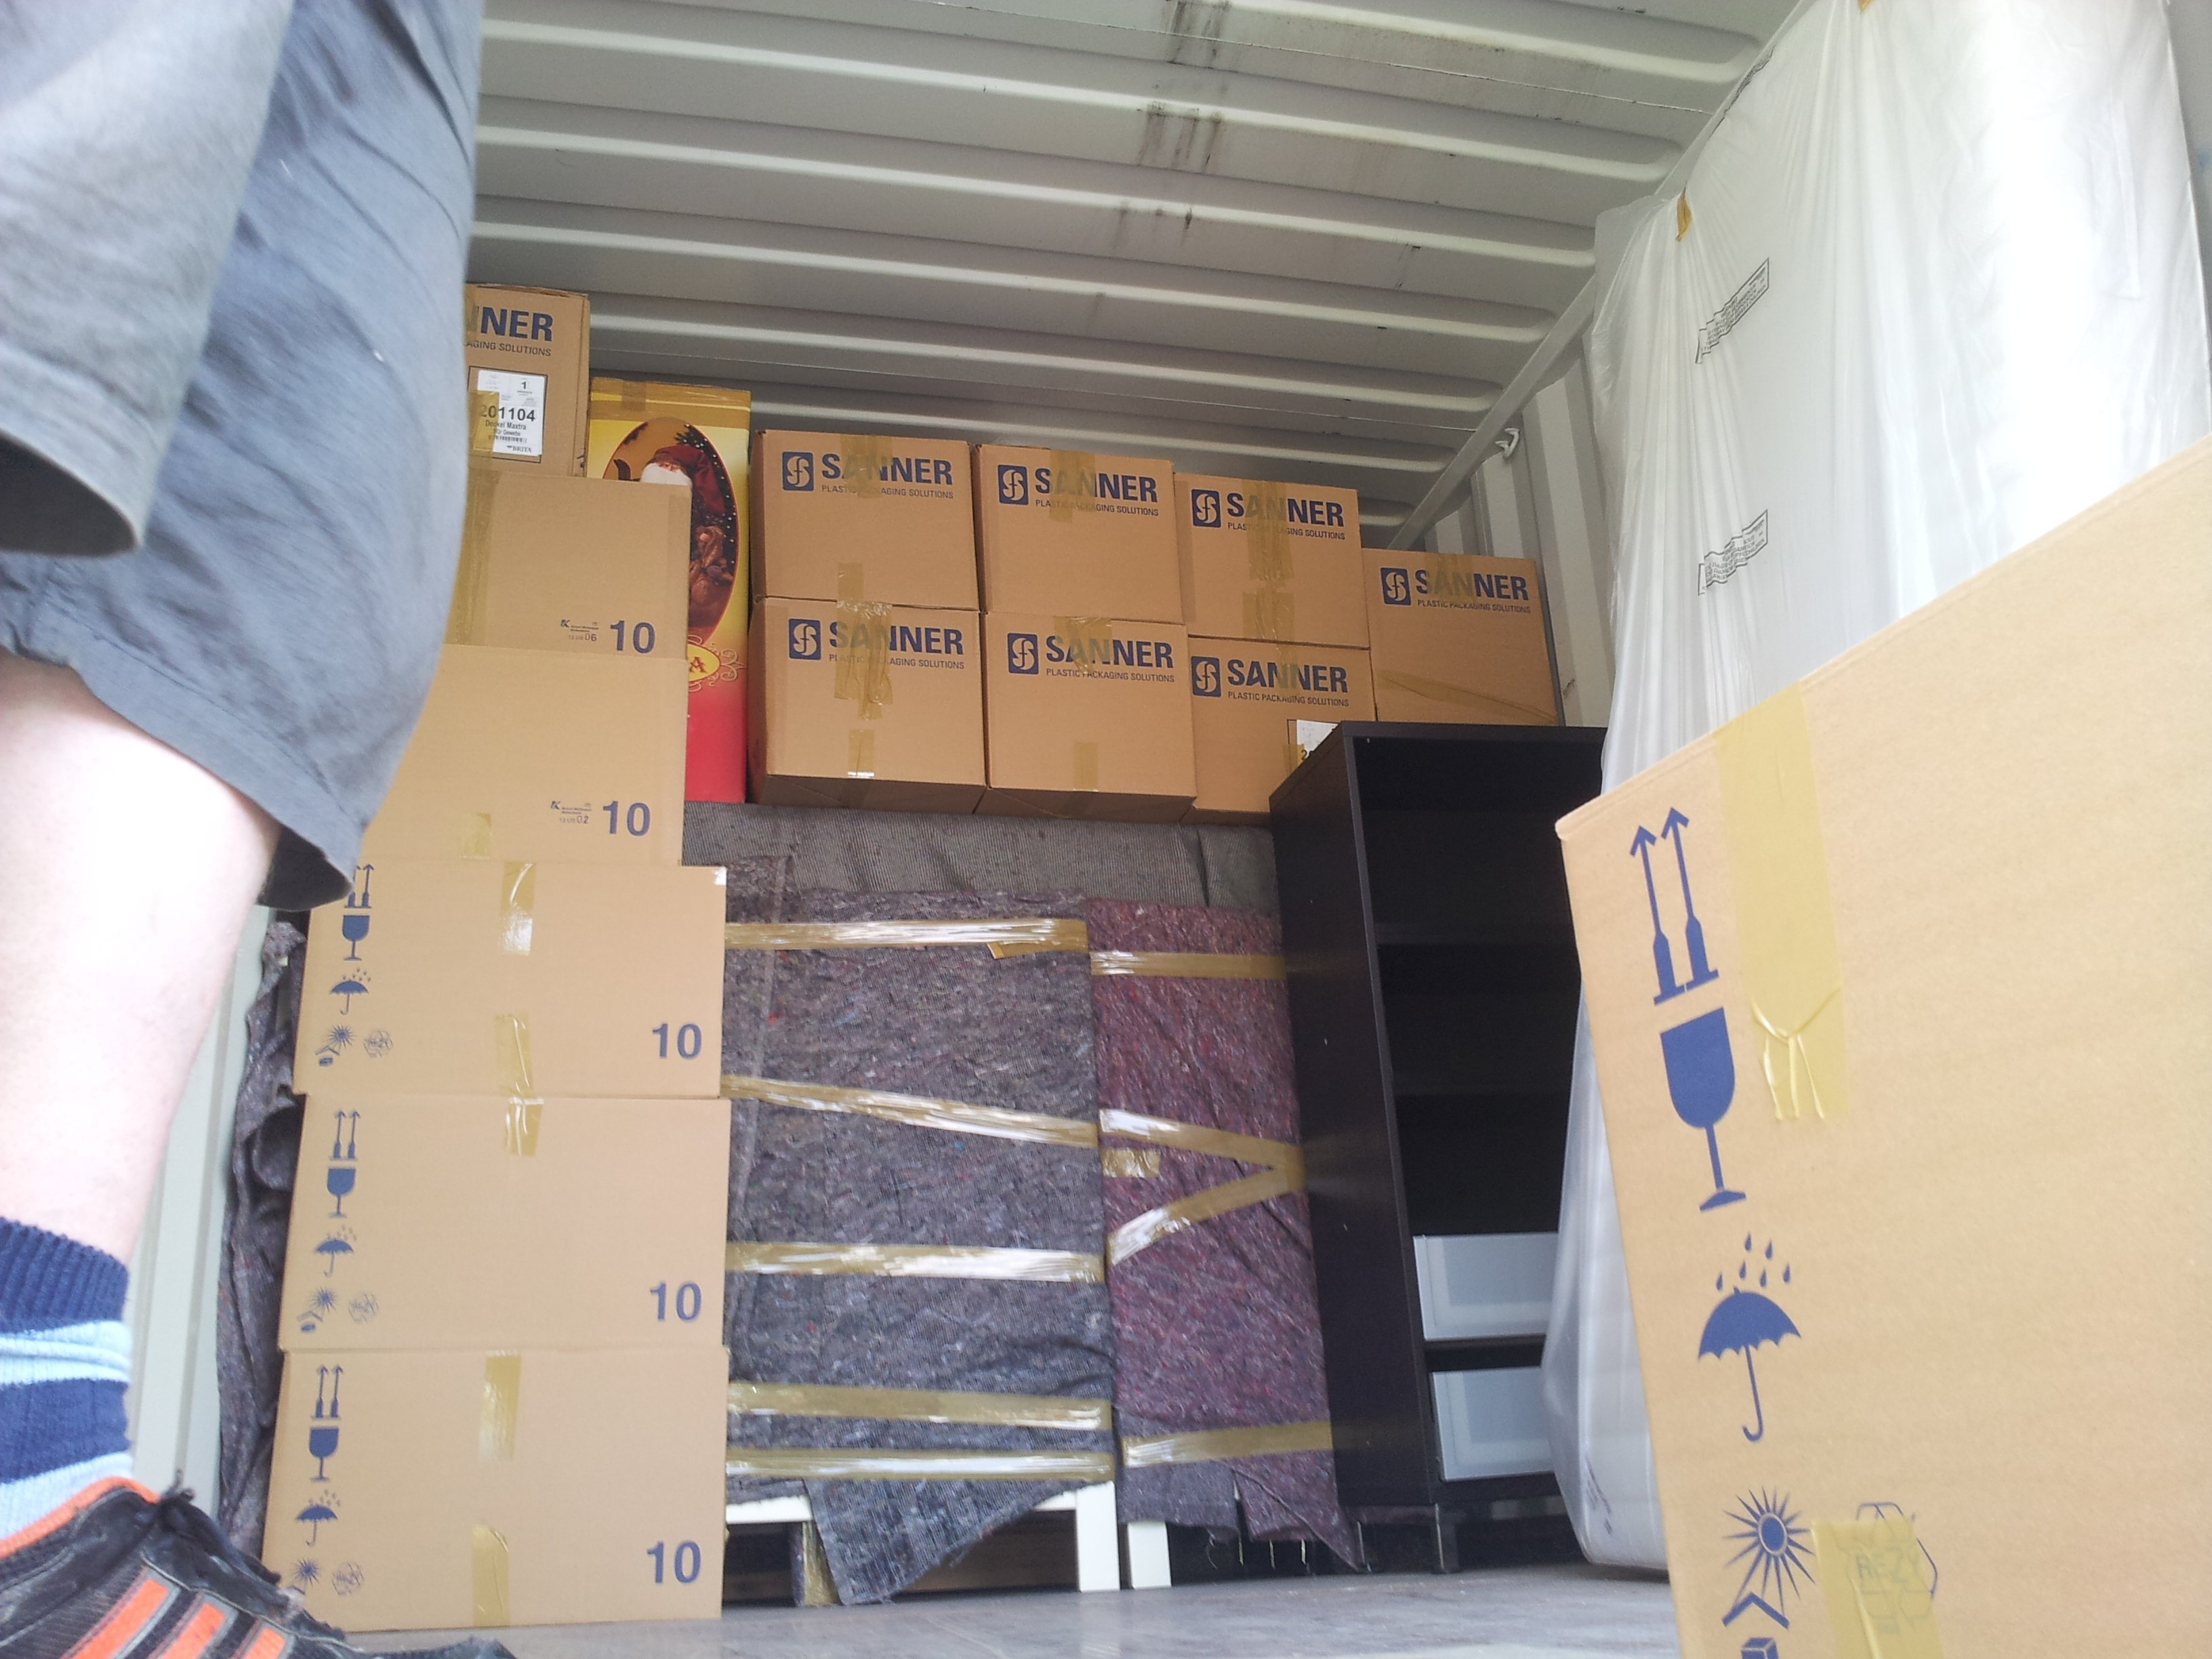 Export packing, export wrapping, export pack, international packing, packing to go abroad, world wide packing, worldwide move, international move, international removals